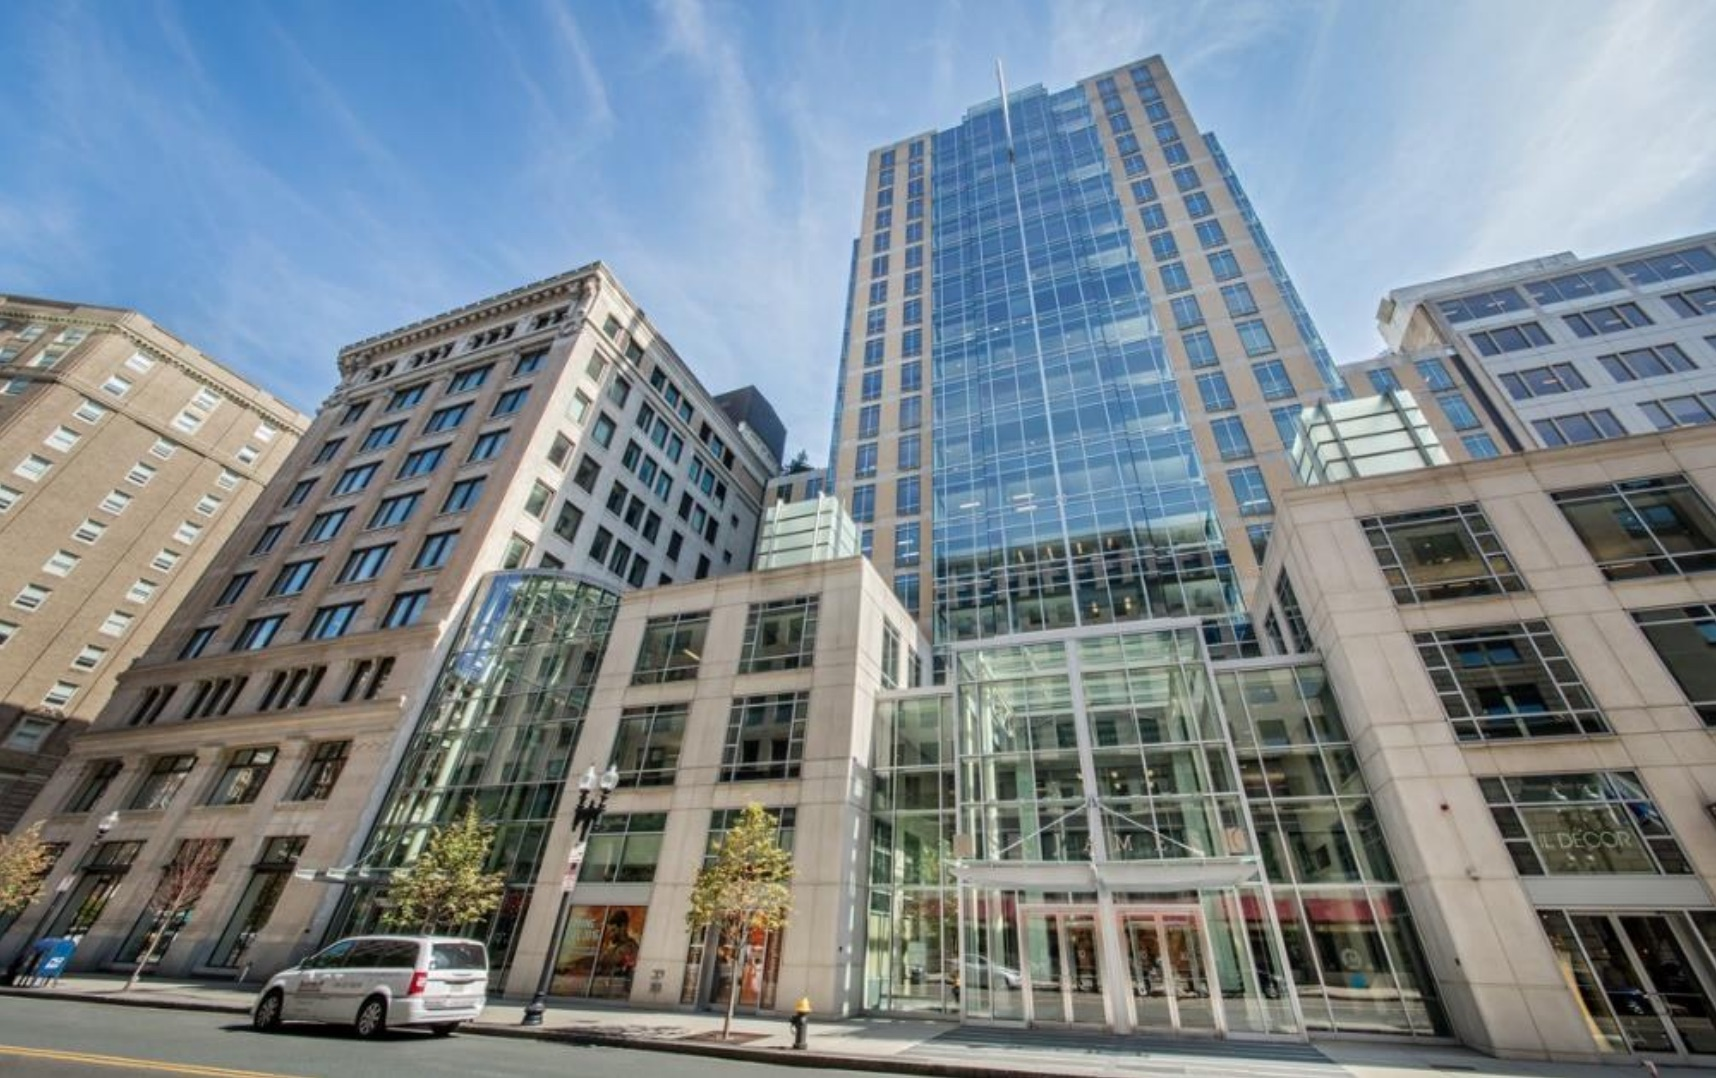 10 st james avenue 75 arlington street back bay office property acquisition mori trust tokyo japan